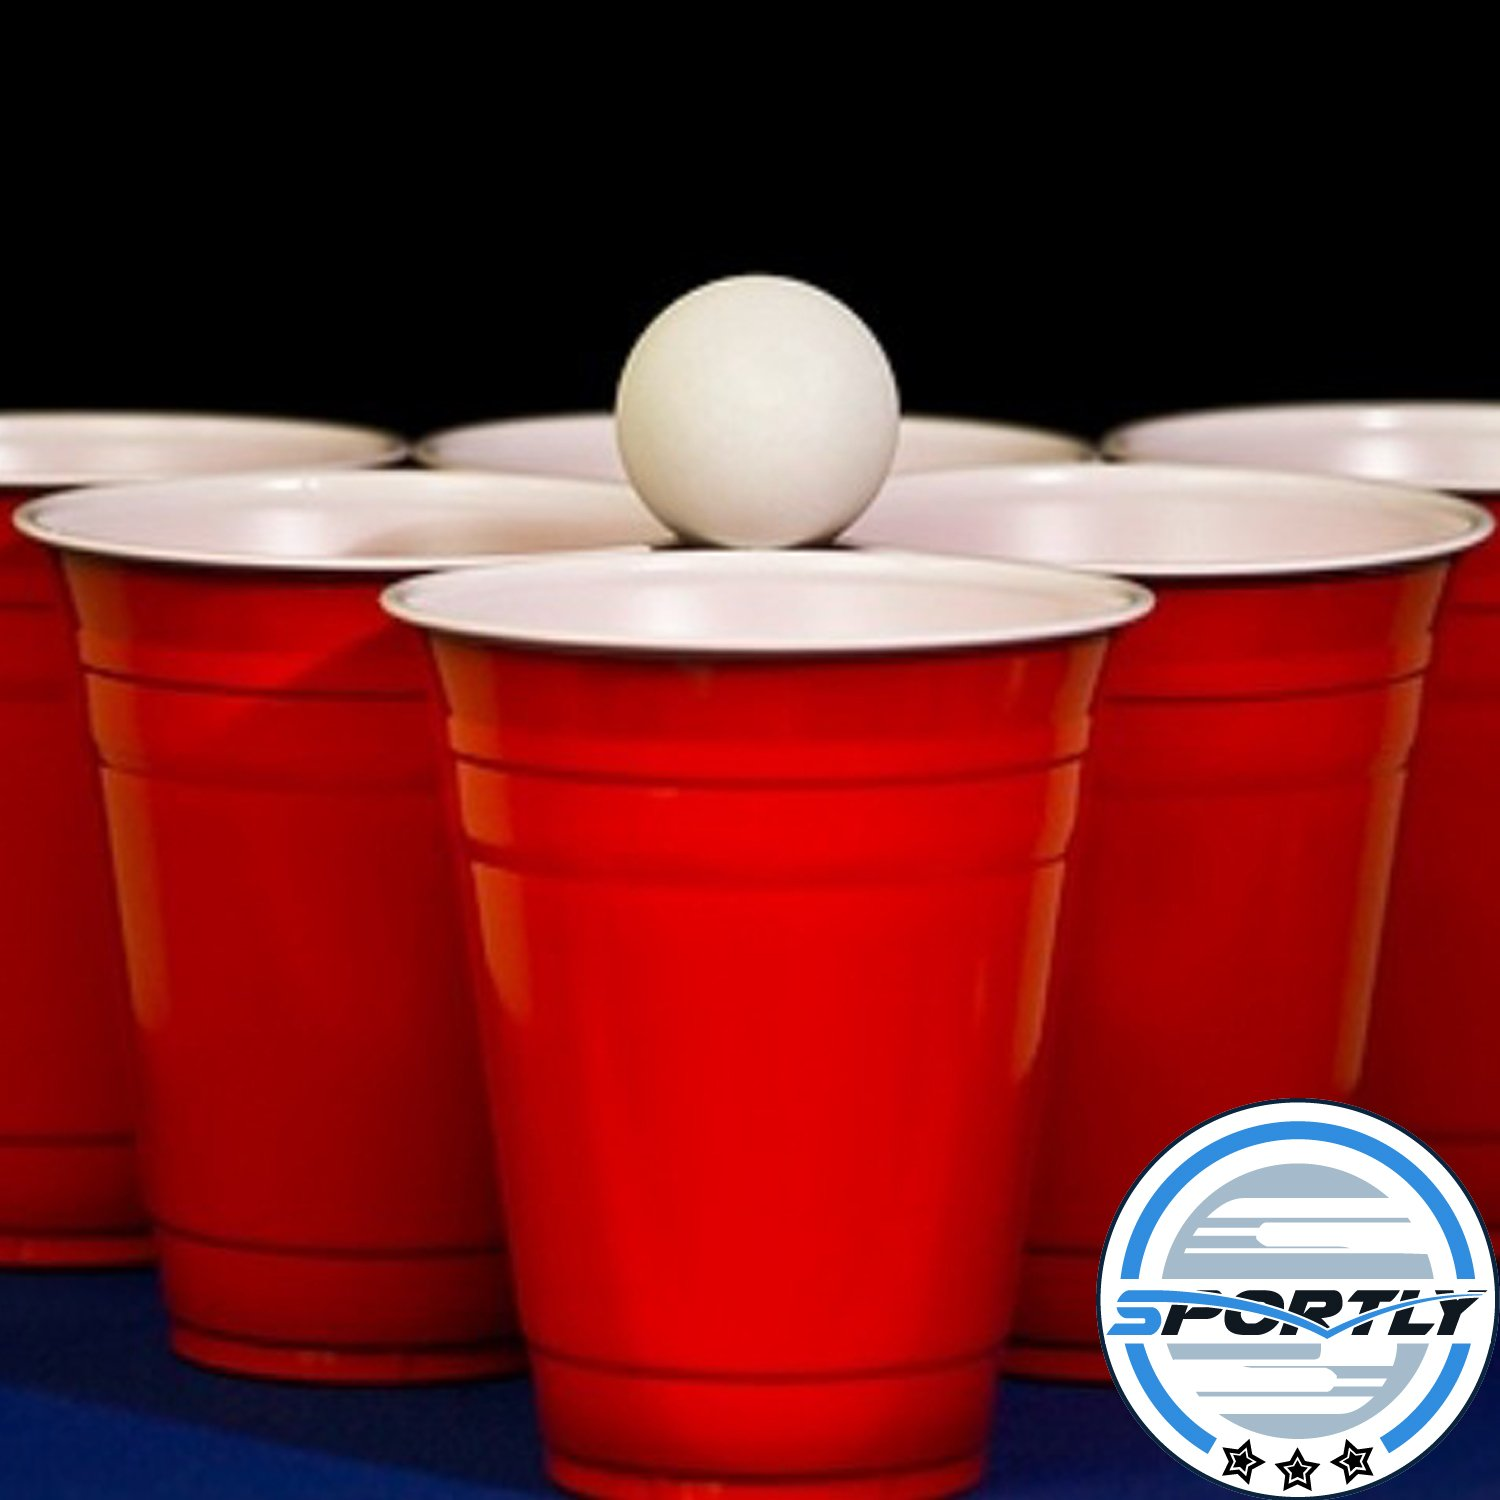 Super Beer Pong Trash Cans As Red Solo Cups And A Volleyball The Ping Ball